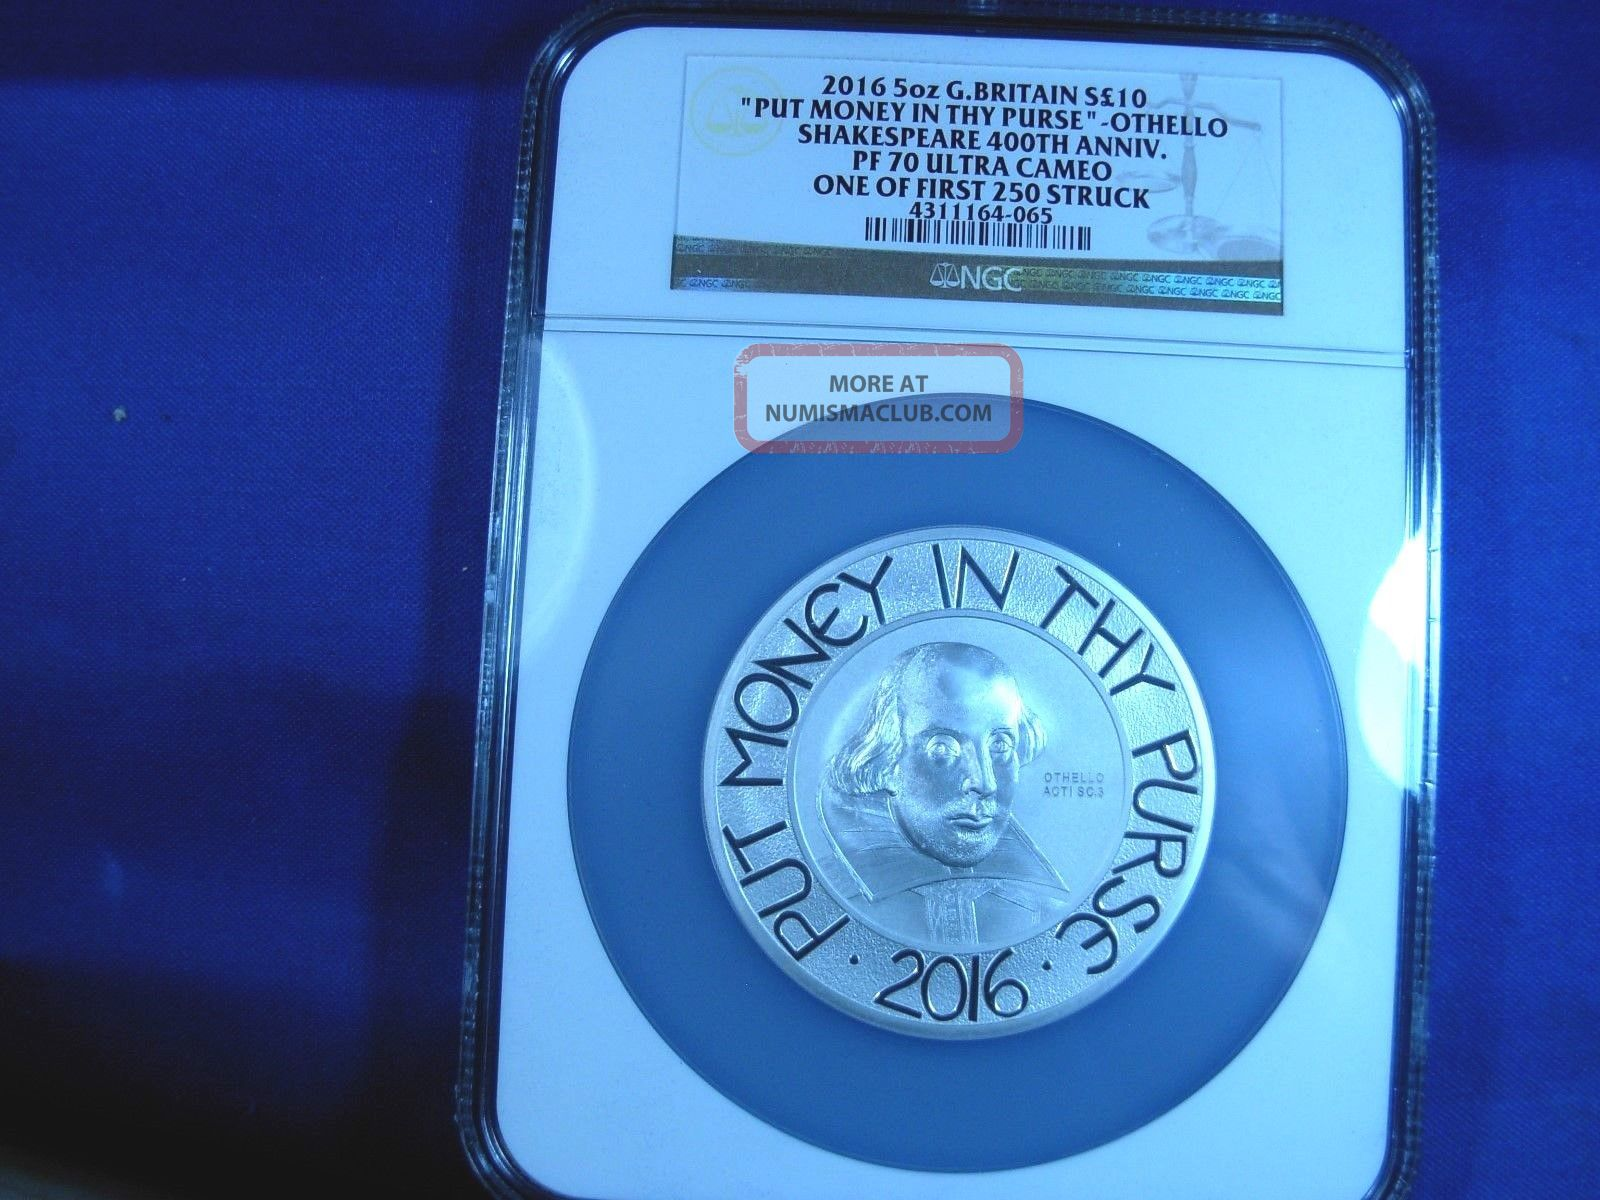 Uk 2016 10gbp 5 - Oz Silver Shakespear Fr Ngc Pf Ouc 39 Of750 1 Of 1st 250 Stuck Coins: World photo